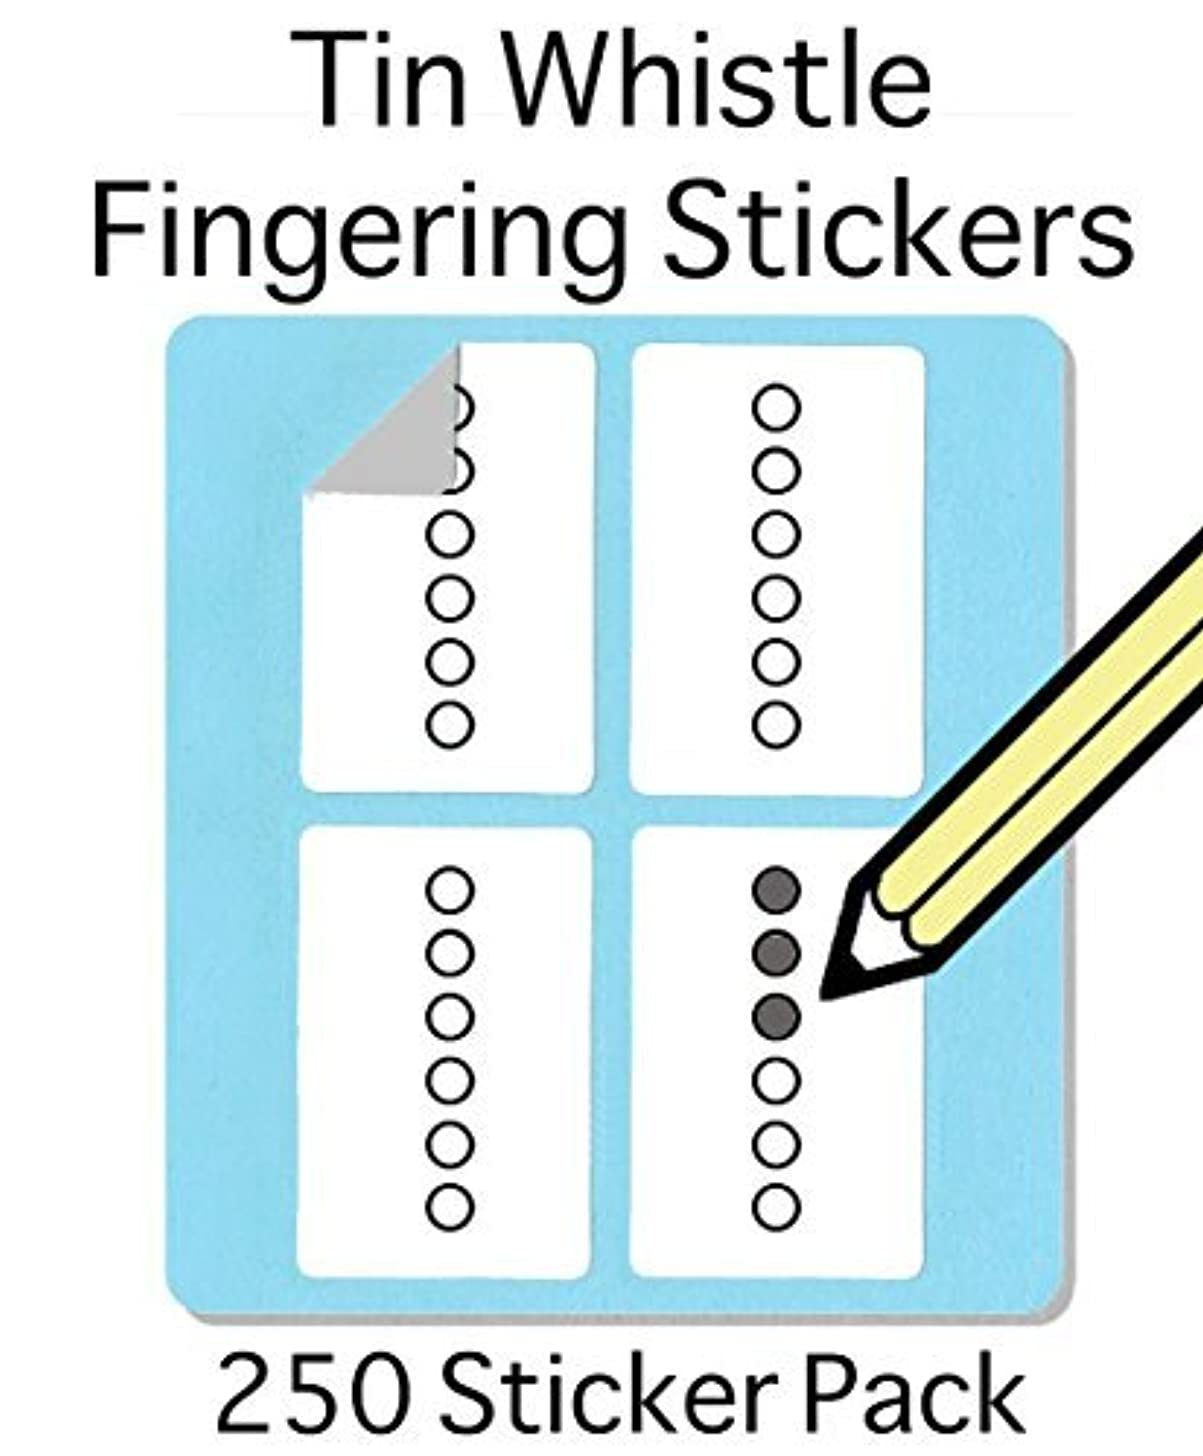 Tin Whistle, Basuri & Native American Flute Fingering Sticker Set (250 Per Pack) Super handy for students and teachers!